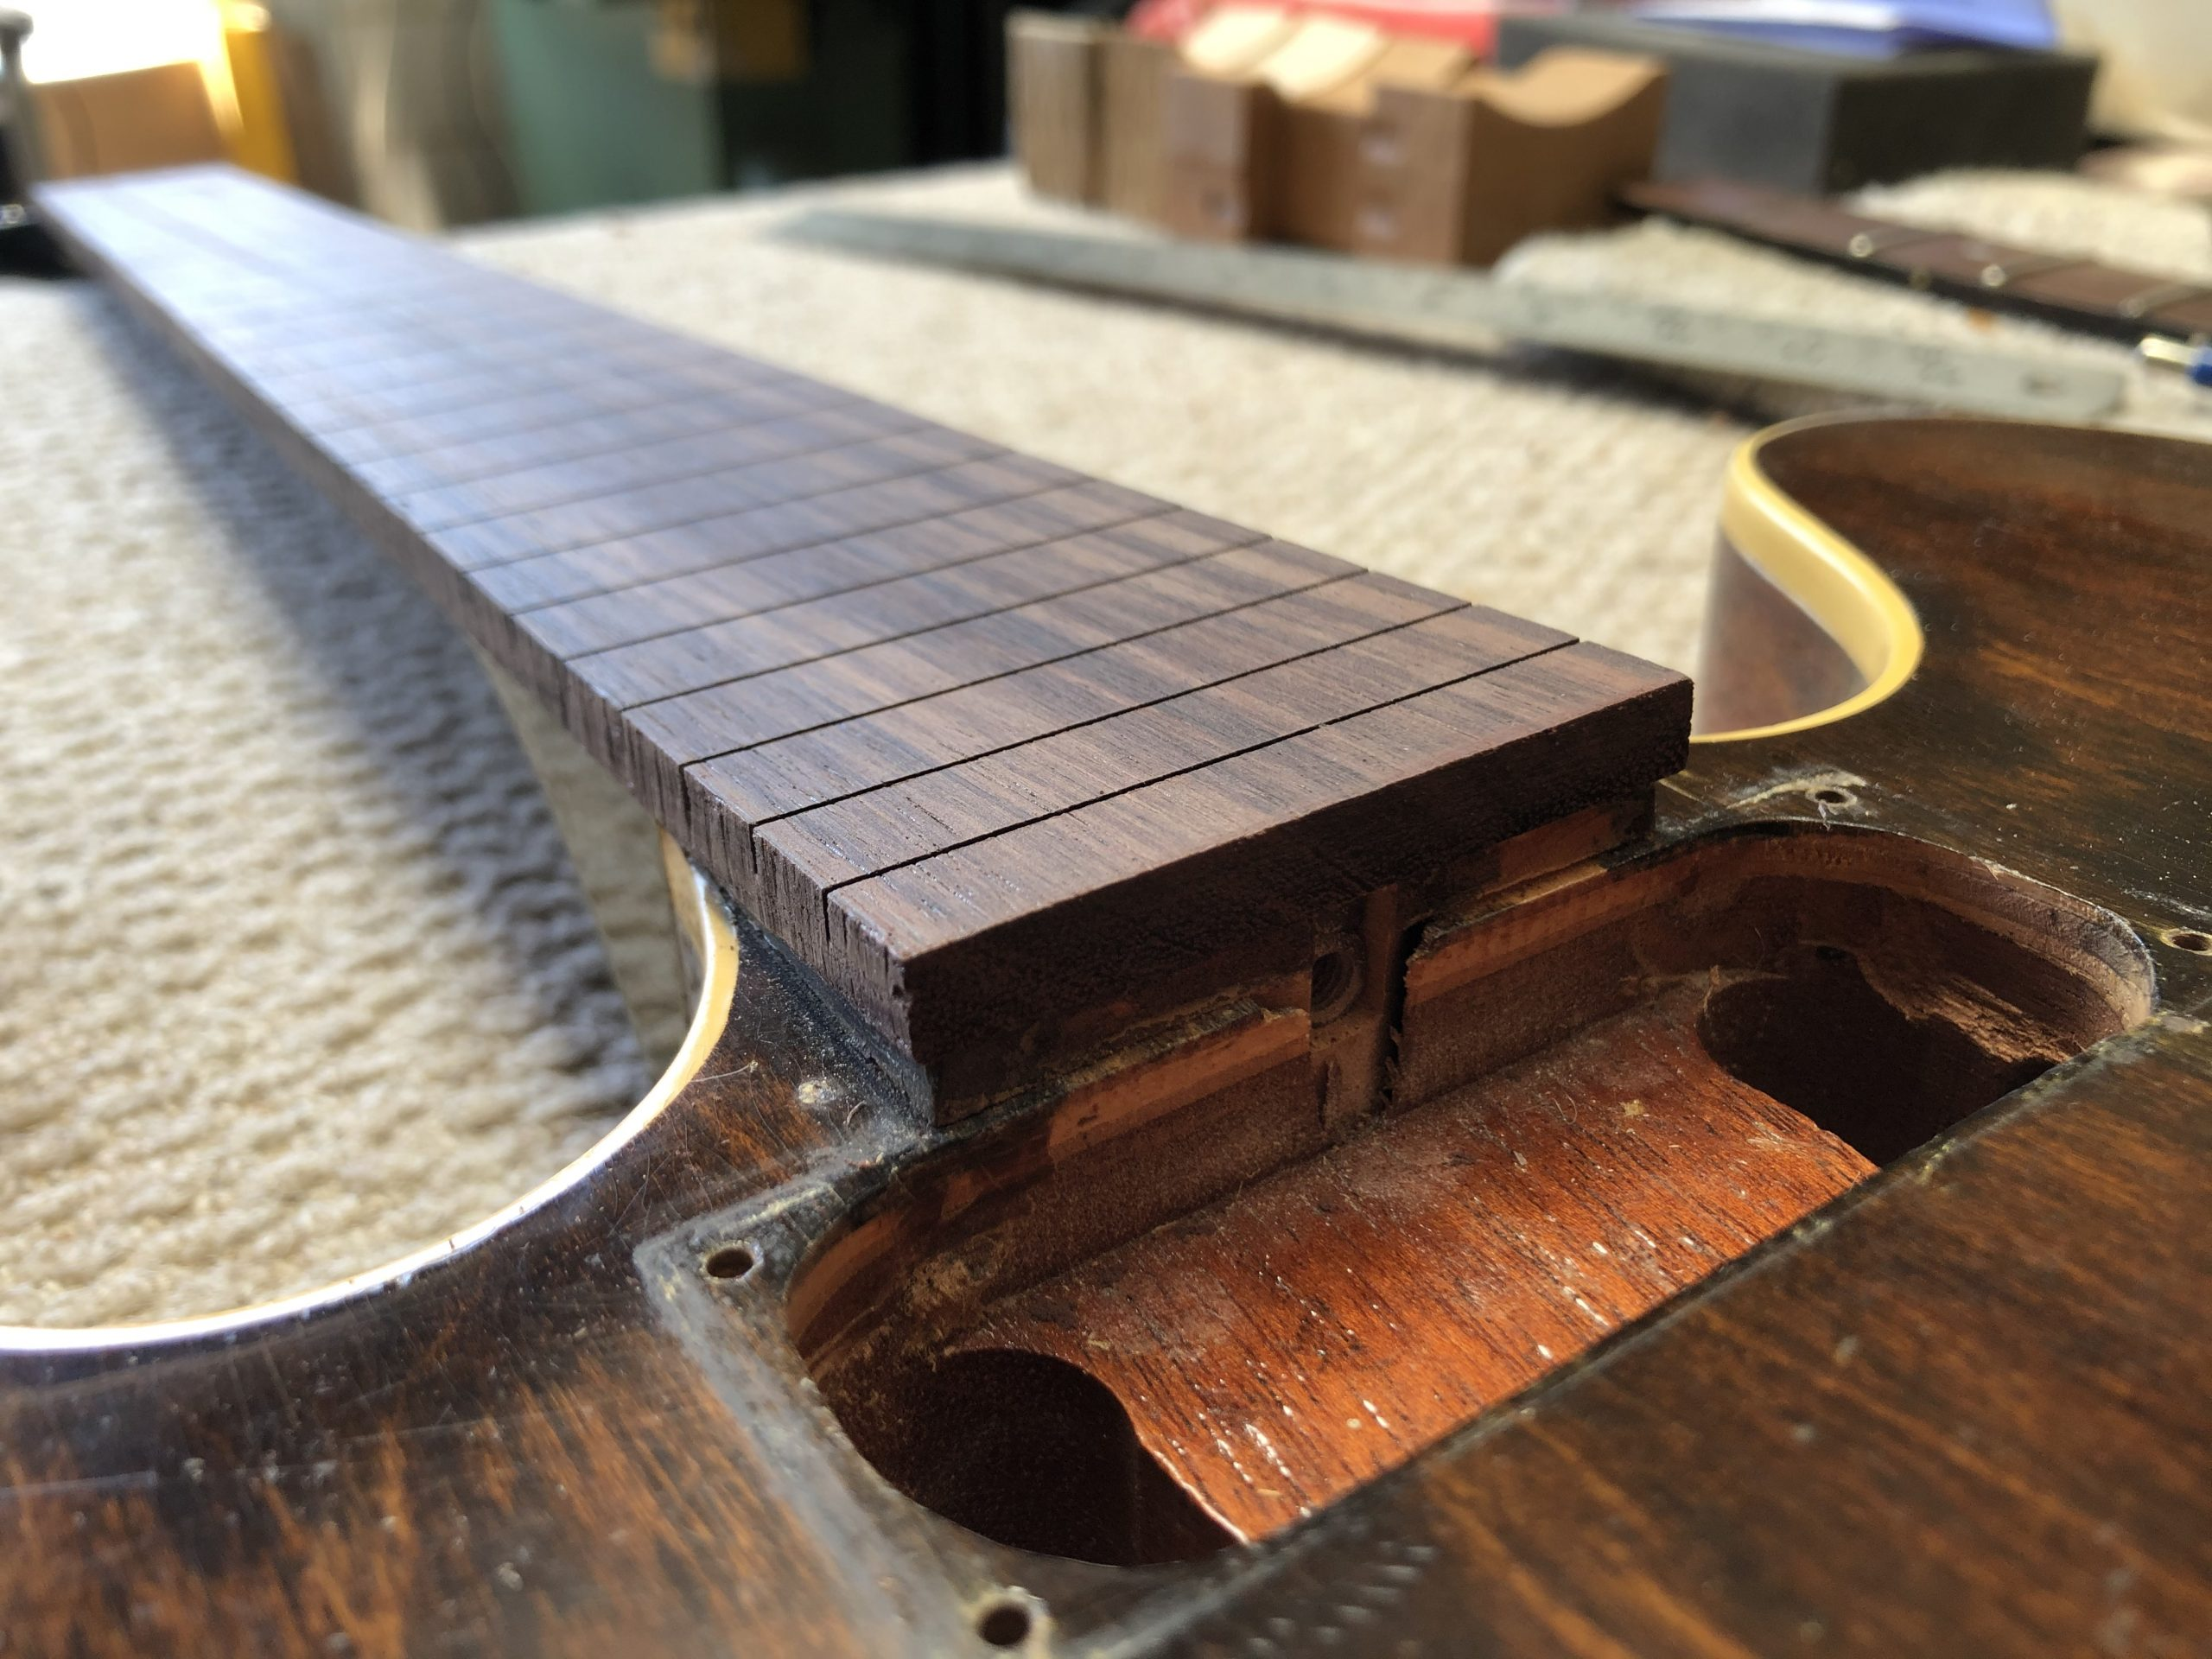 Fretboard fitted